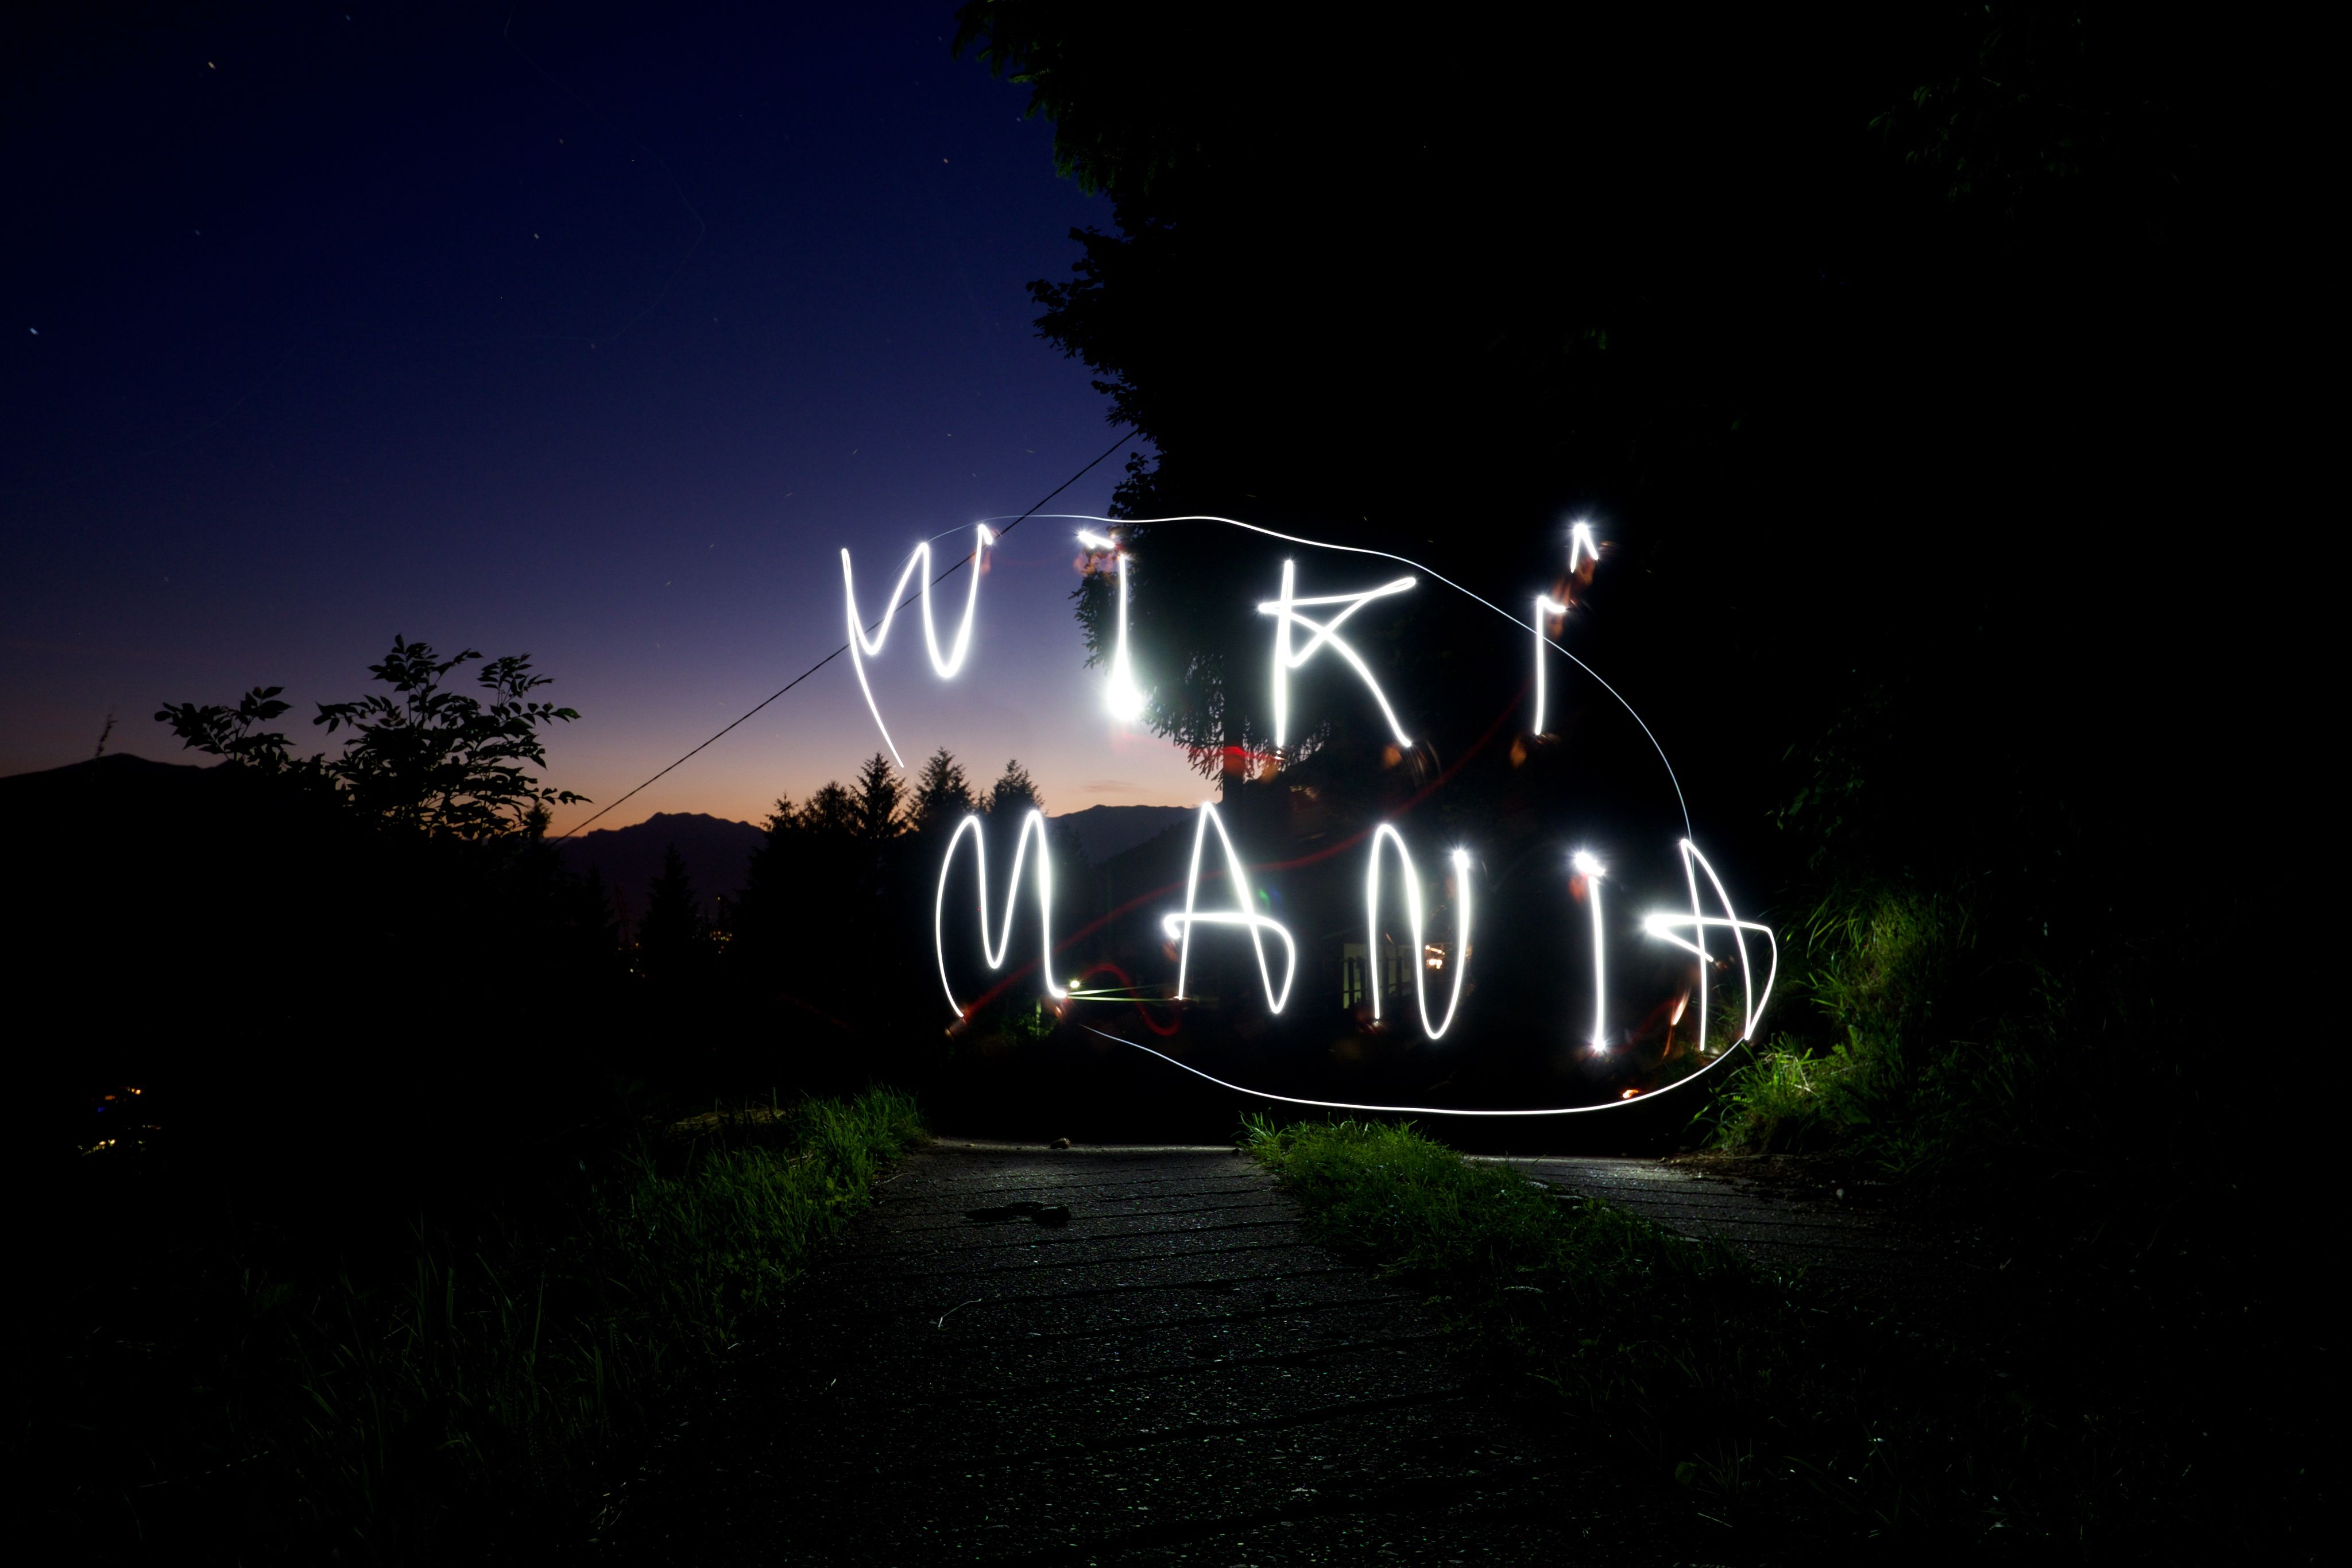 Wikimania_lightpainting_01